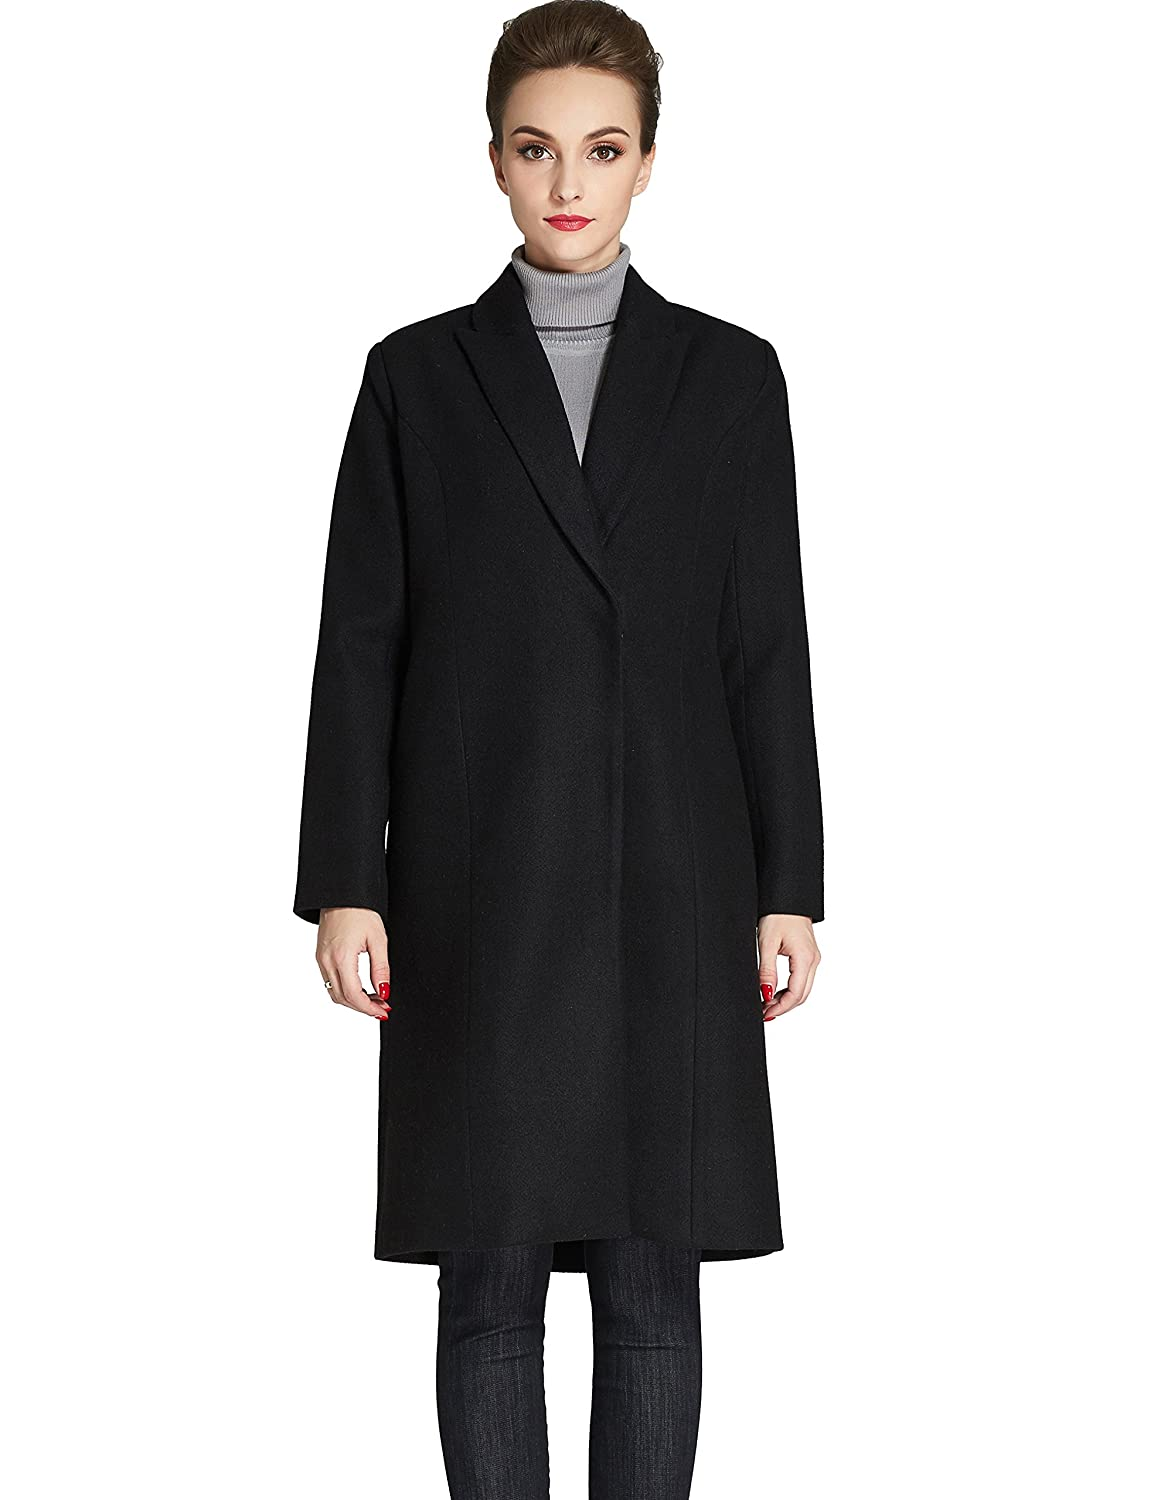 Camii Mia Women's Relaxed Fit Wool Blend Coat